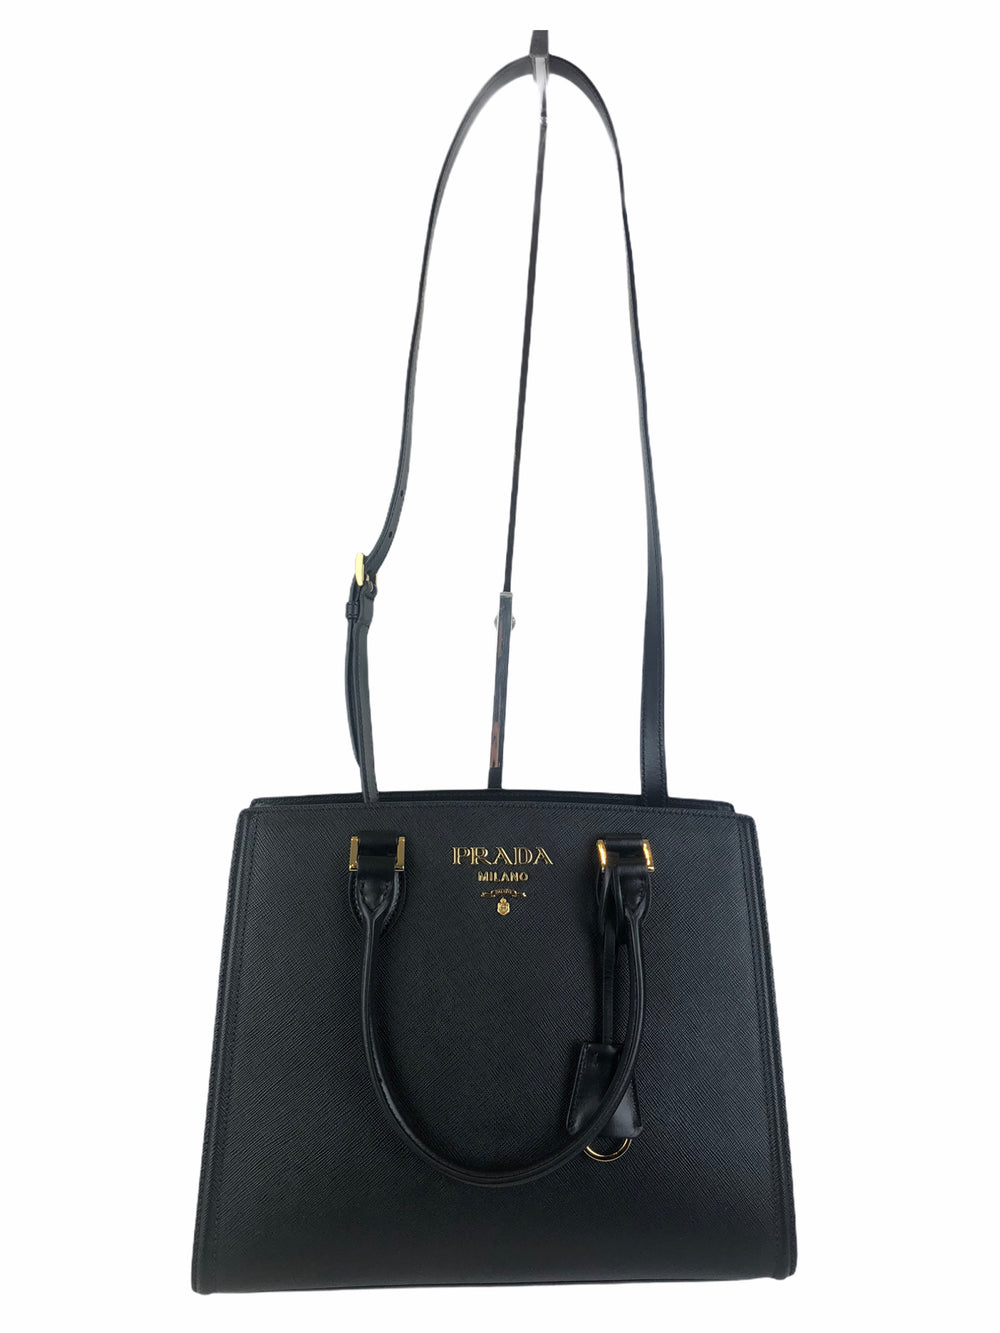 Prada Black Saffiano Leather Tote - As Seen on Instagram 18/10/2020